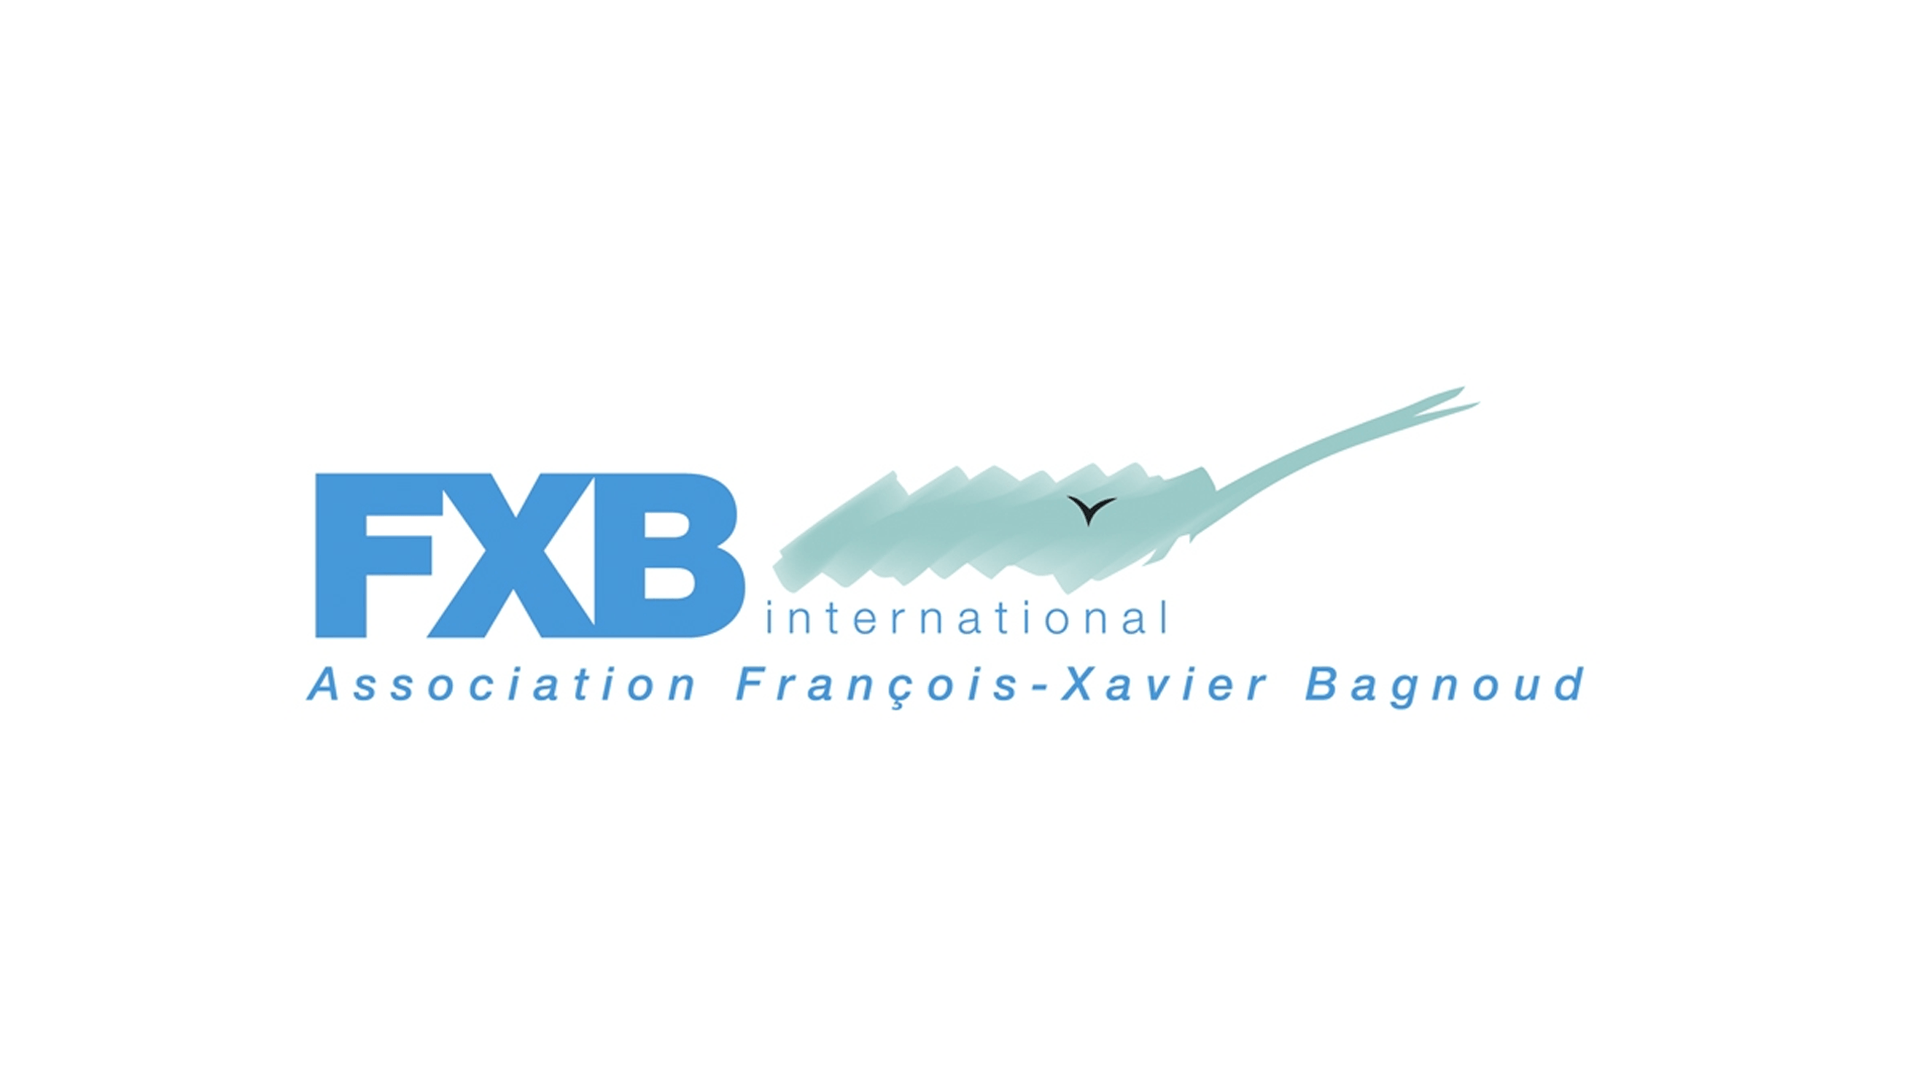 association-francois-xavier-bagnoud